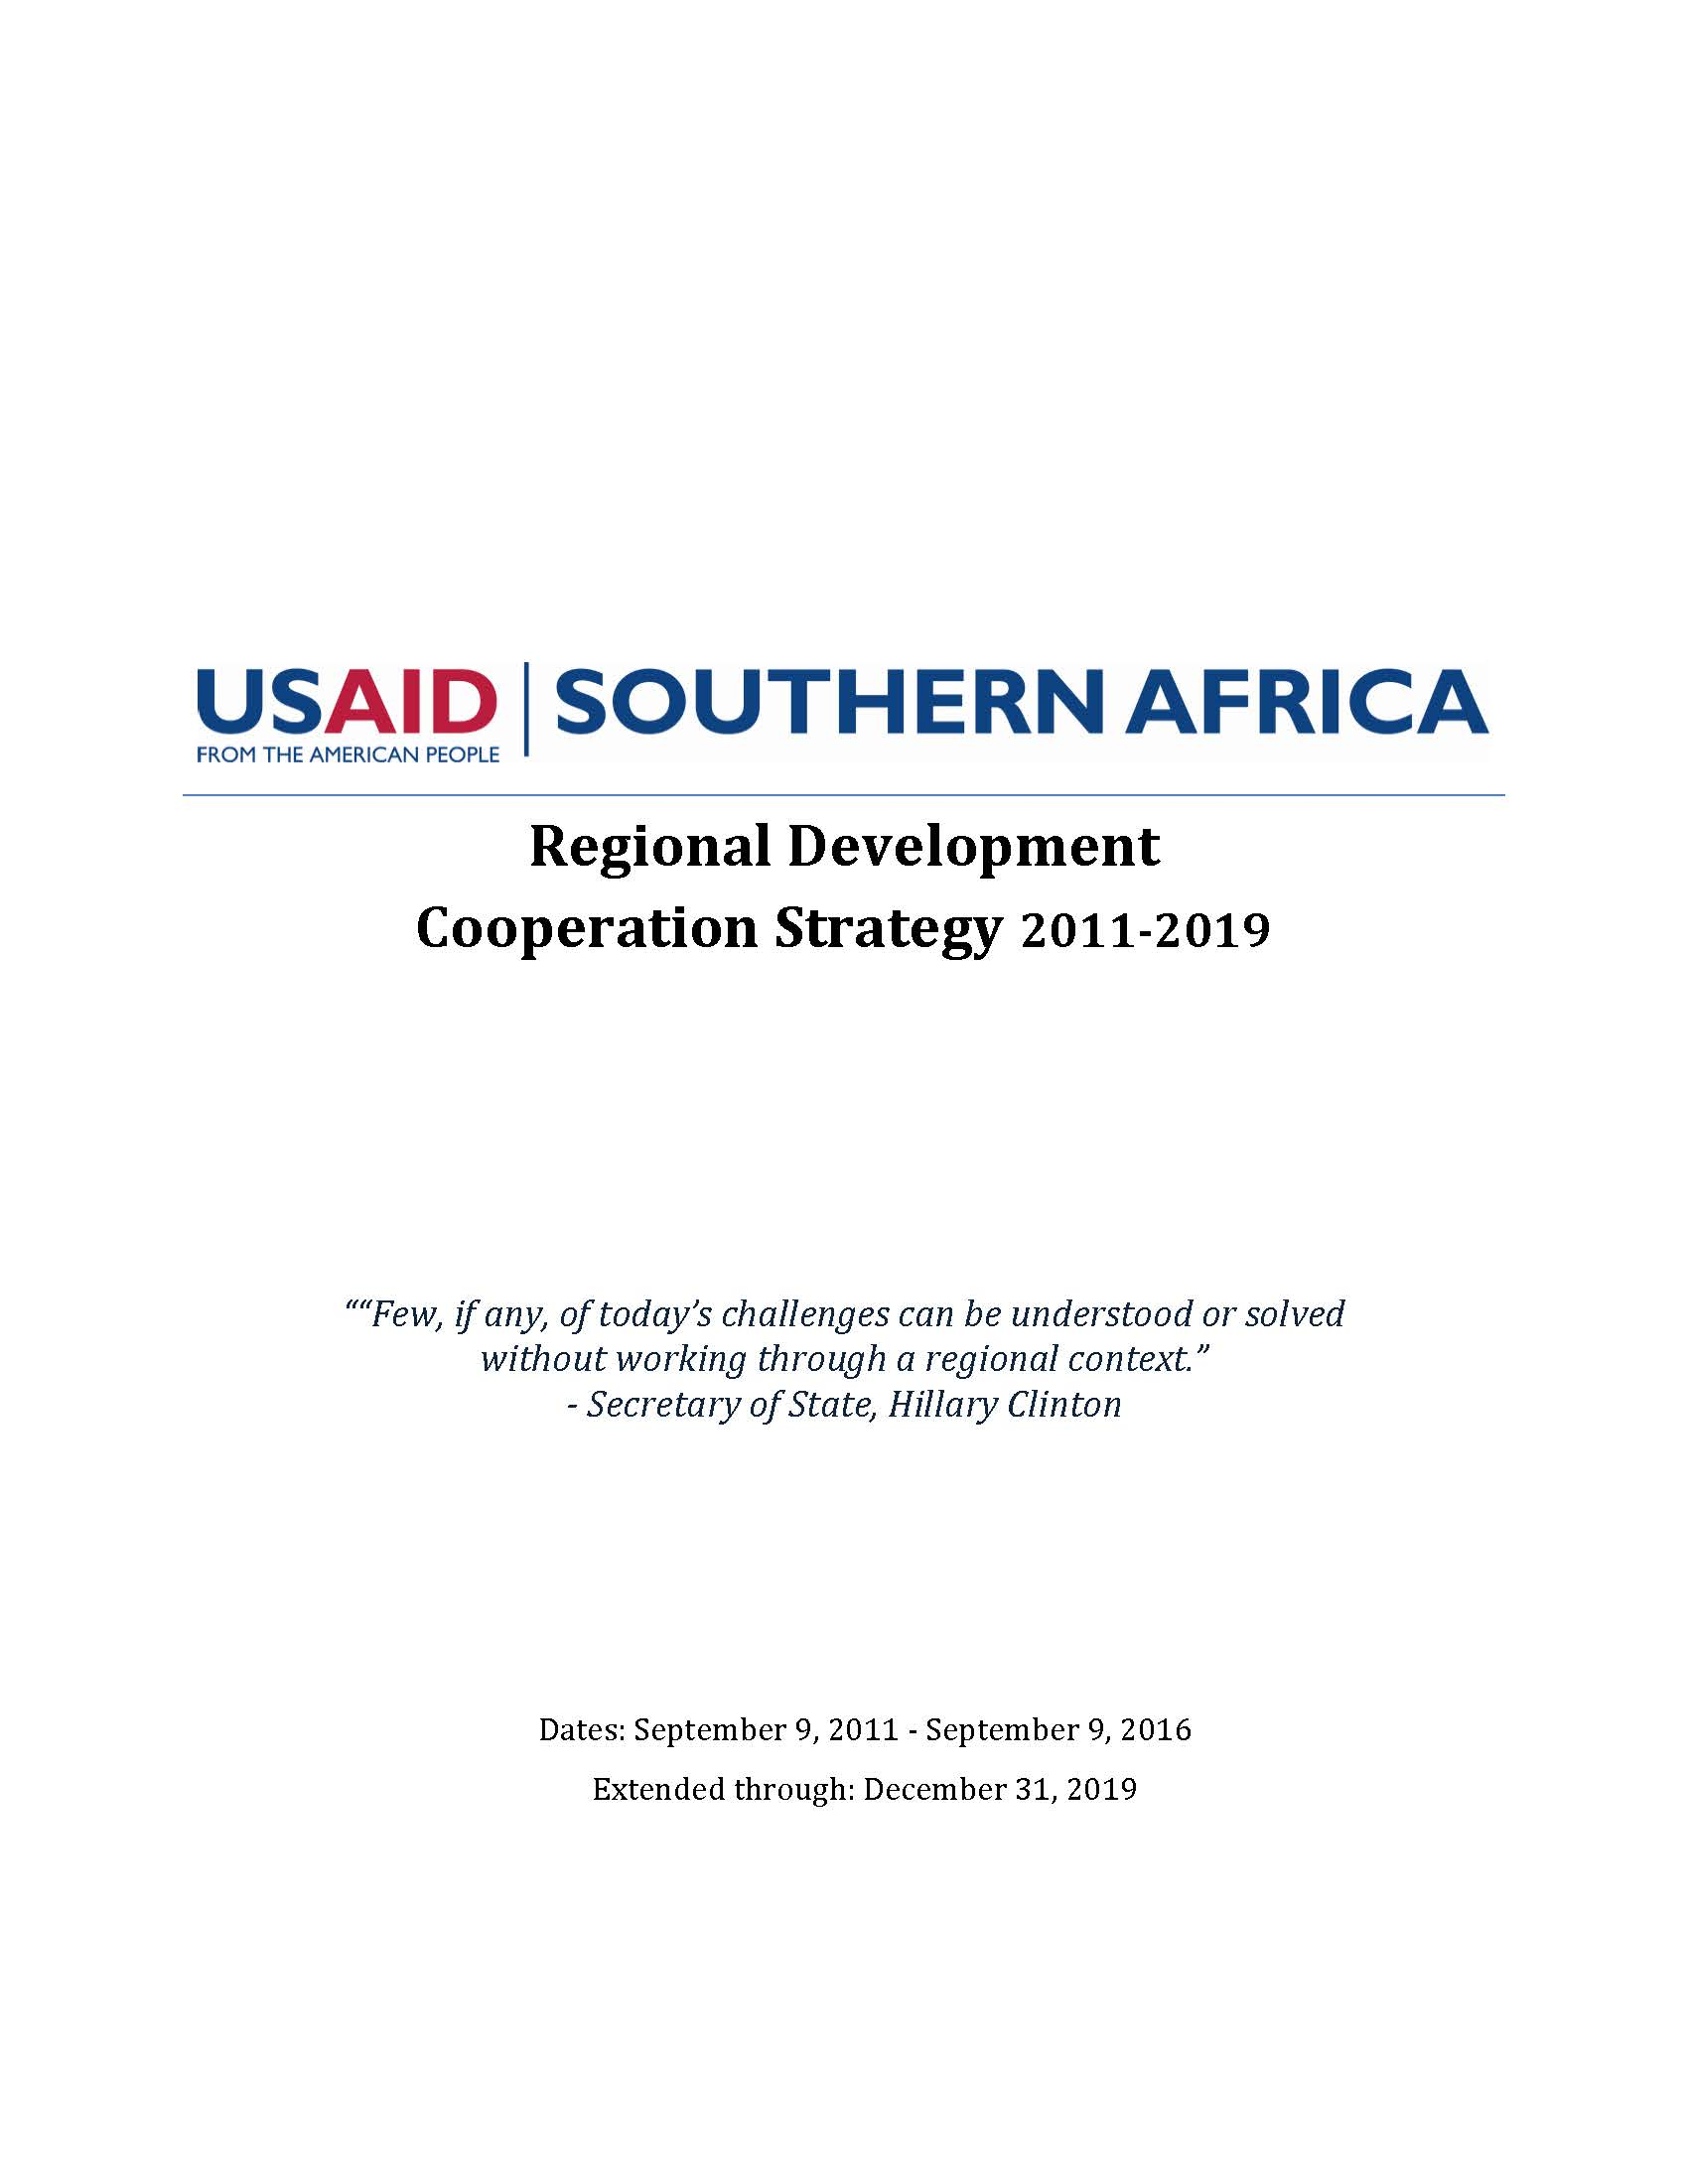 South Africa Regional Development Cooperation Strategy